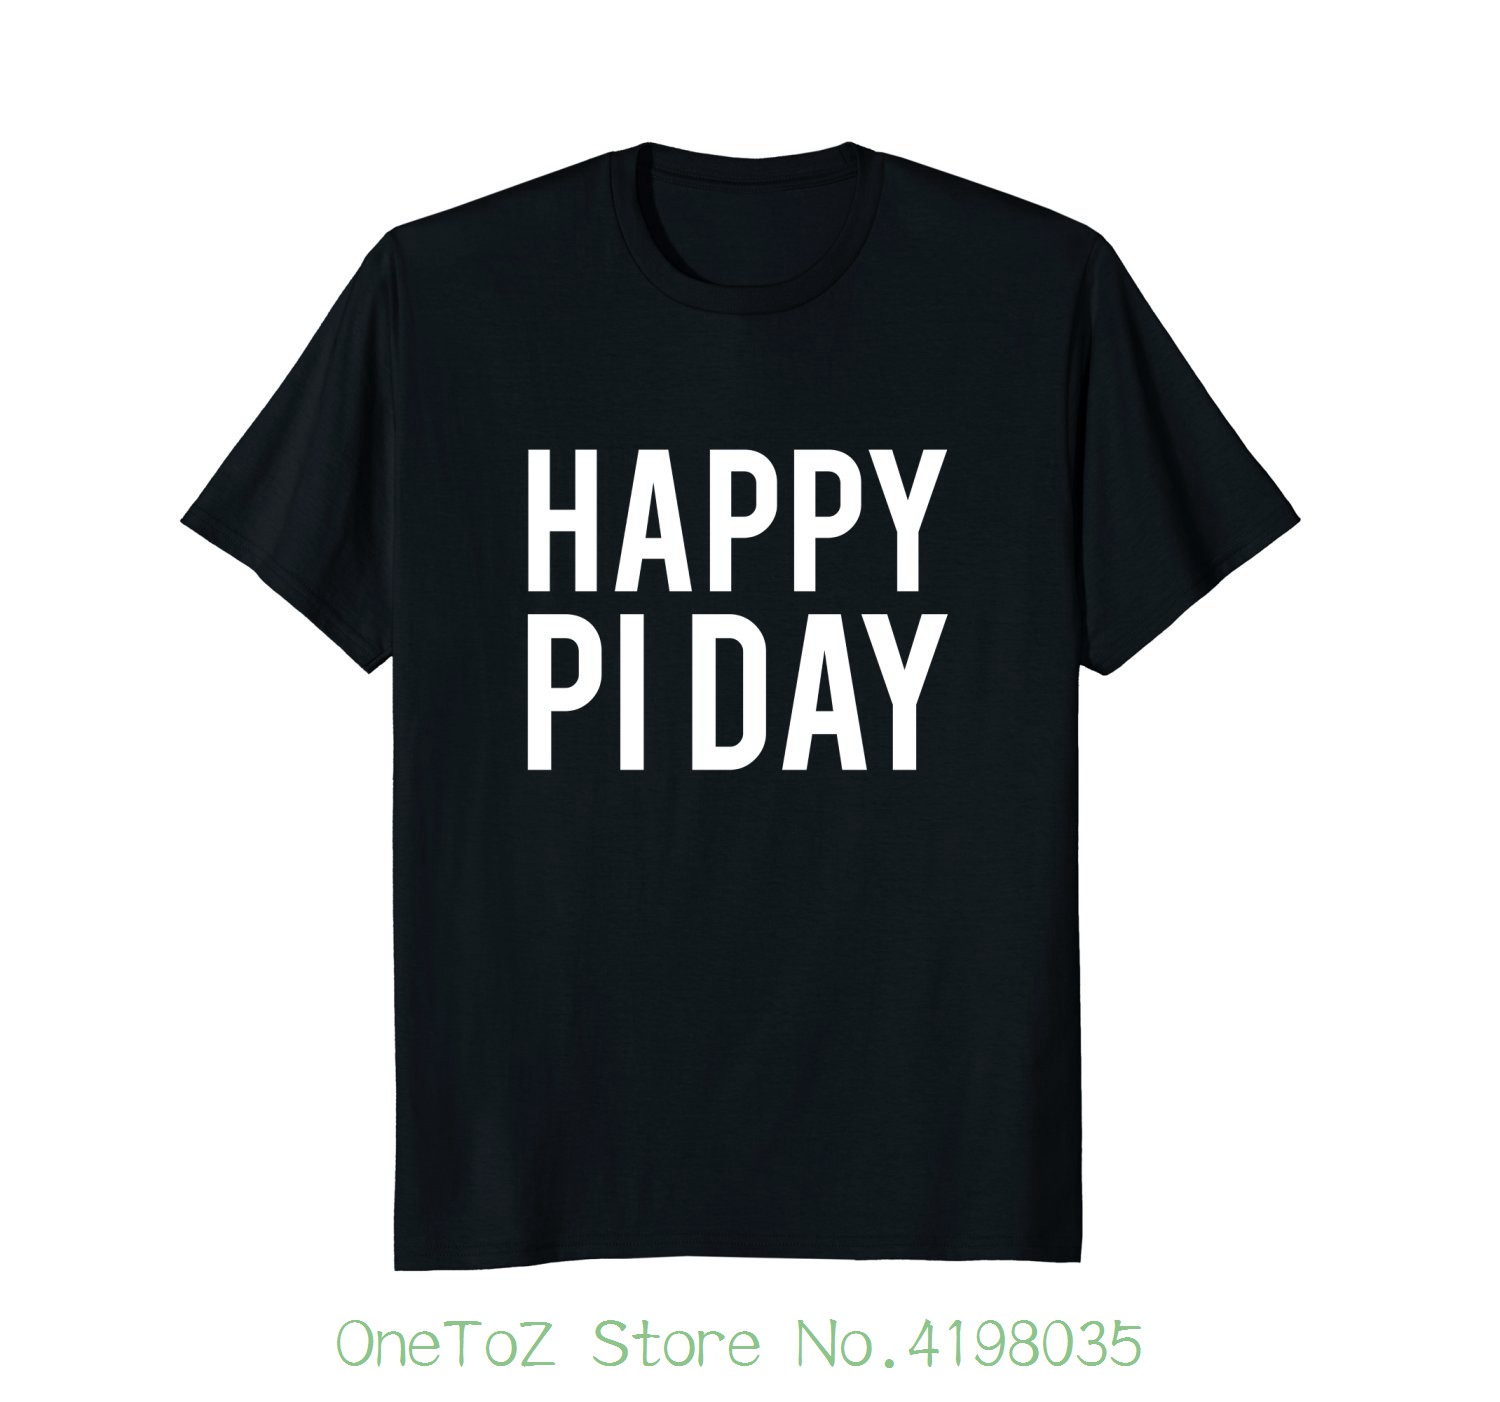 Pi Day Tshirts For Men Women Happy Pi Day Funny Math Shirts Top Quality Cotton Casual Men T Shirts Men Free Shipping